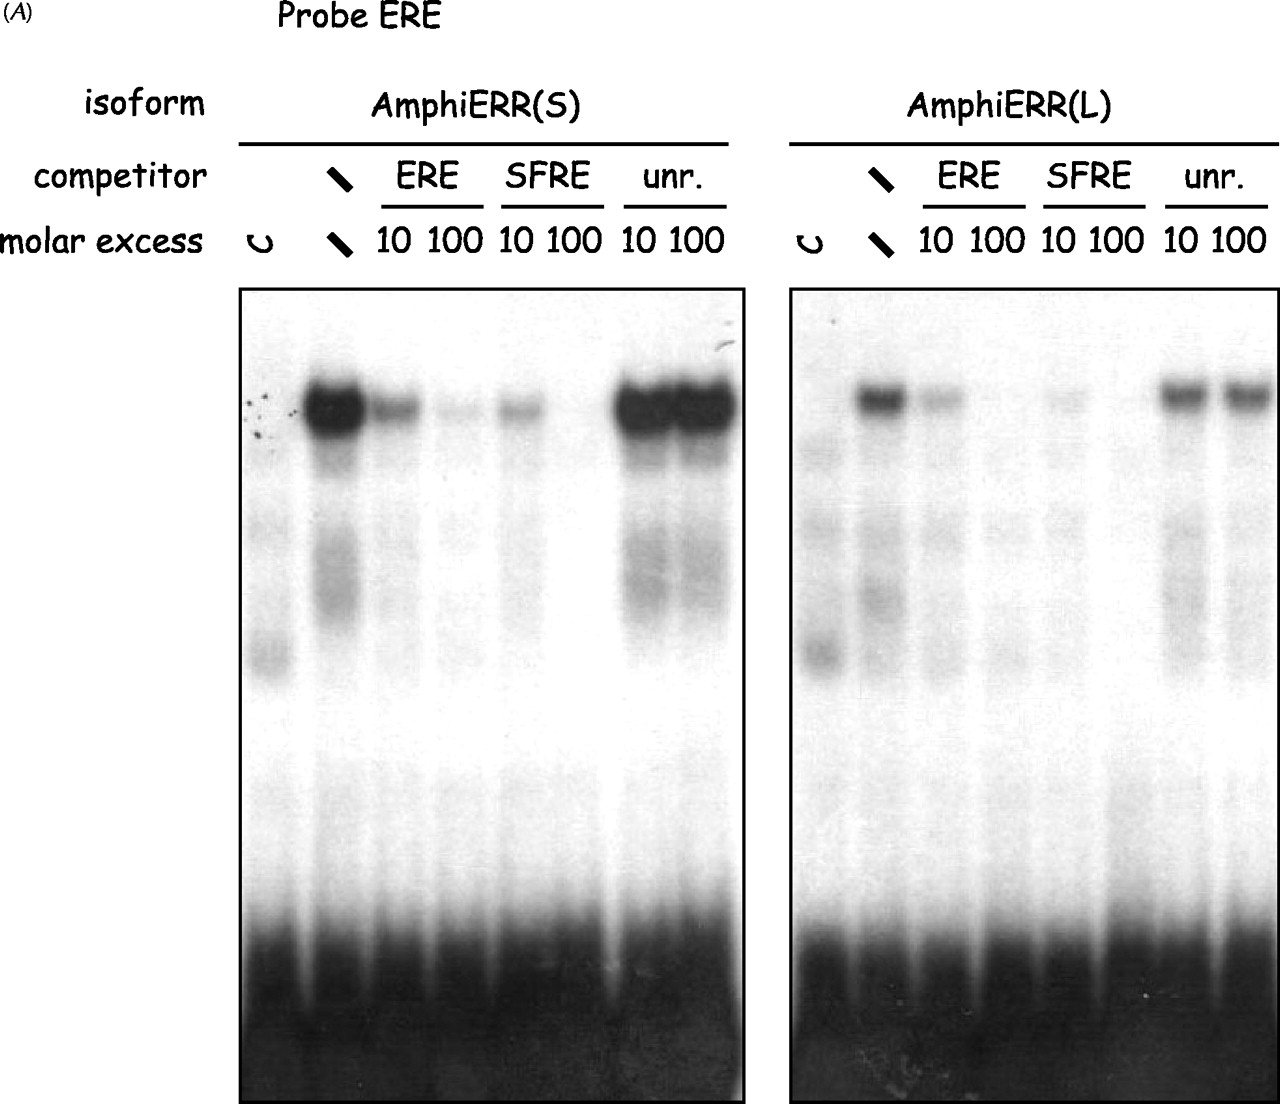 Dimerization is required for transactivation by estrogen